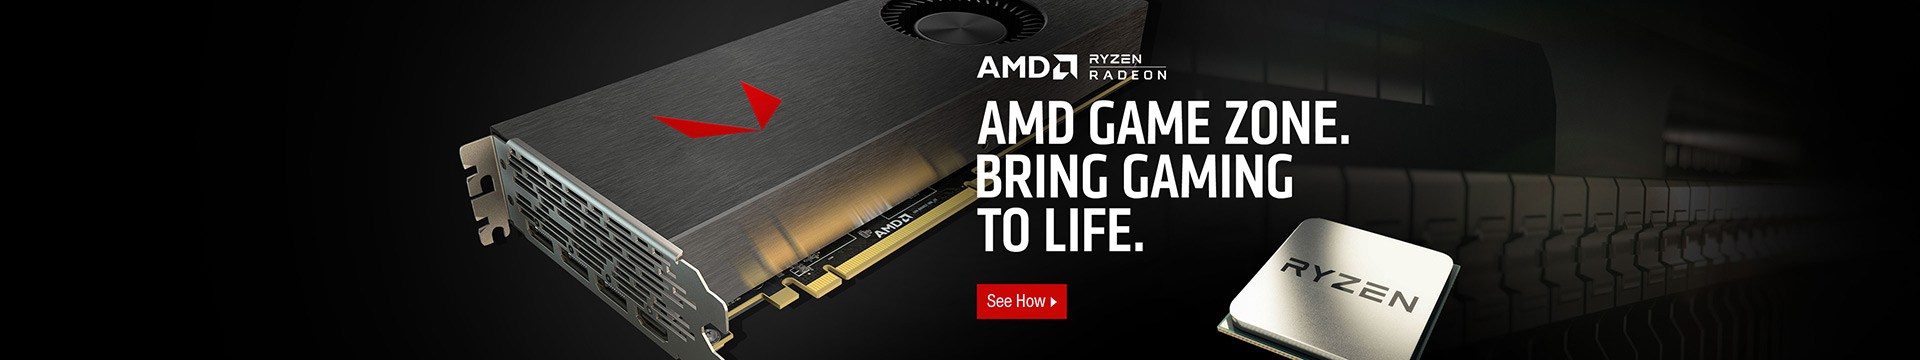 AMD GAME ZONE BRING GAMING TO LIFE